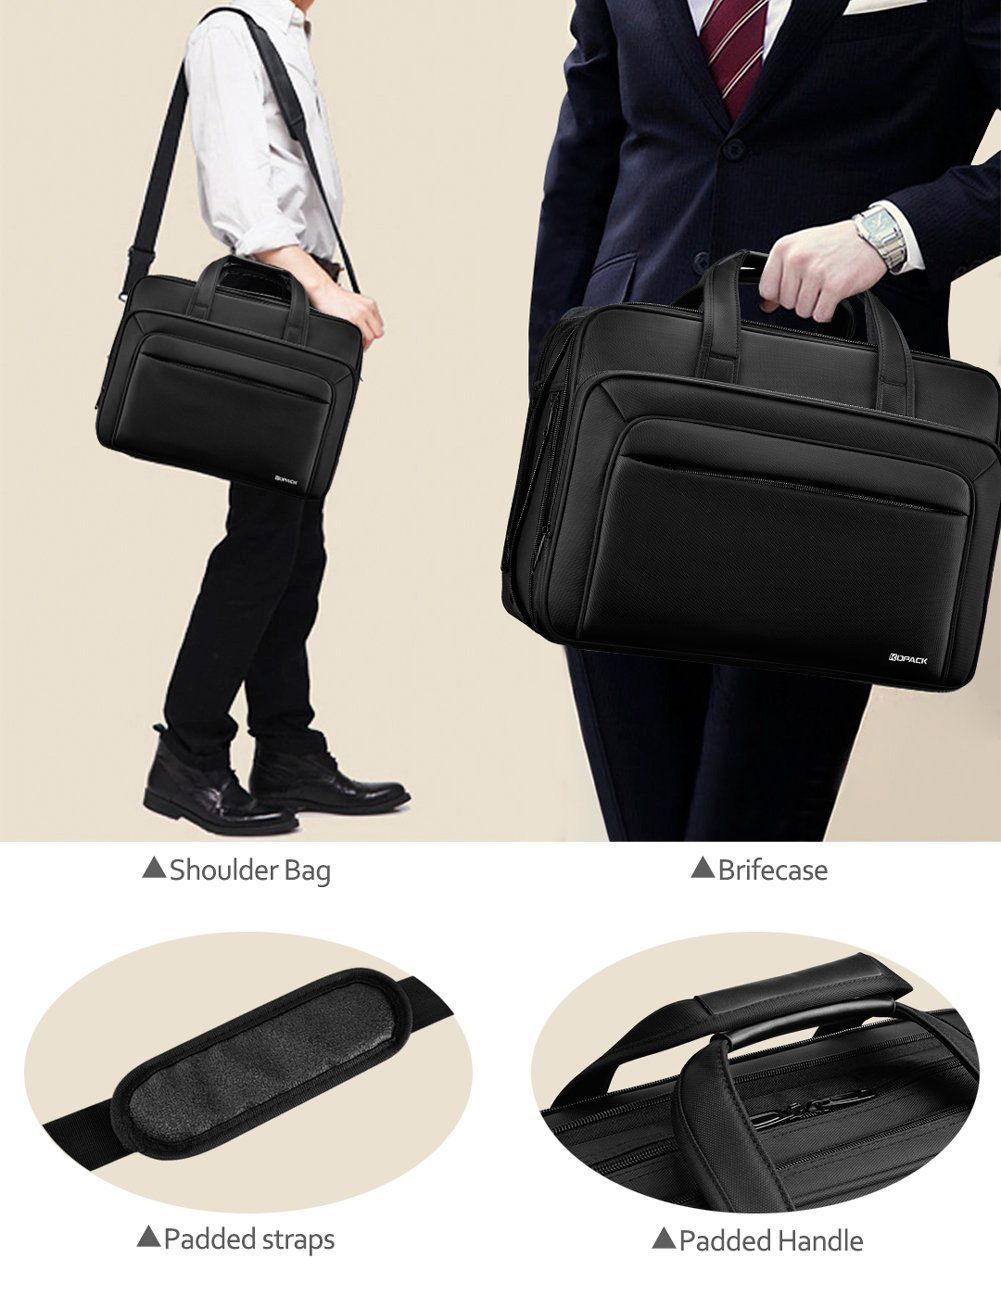 KOPACK Expandable Laptop Briefcase 17 17.3 Inch Large Business Water Resistant Shoulder Computer Bags Black by kopack (Image #7)